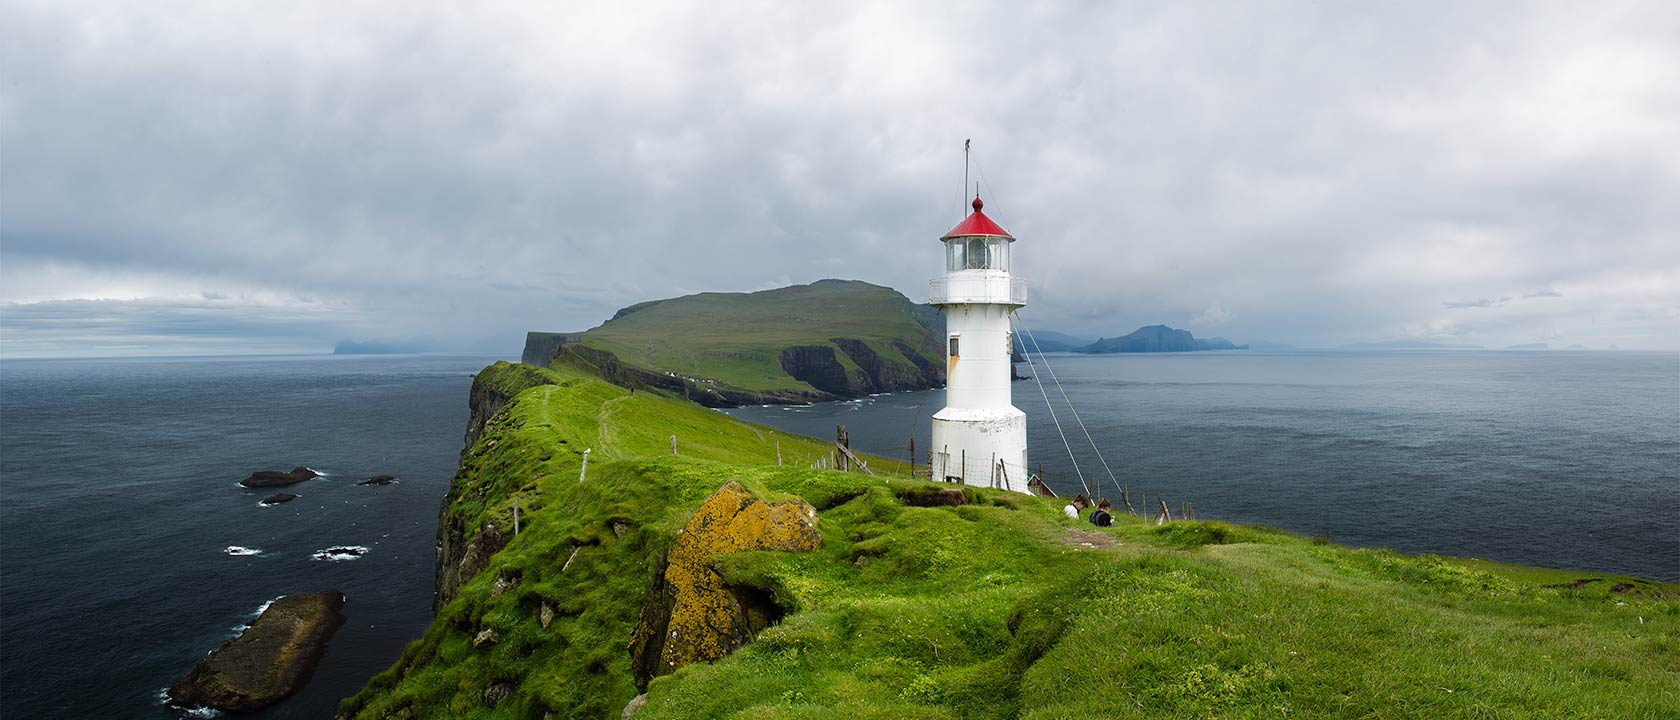 Guide to Mykines: jump on and join thousands of puffins